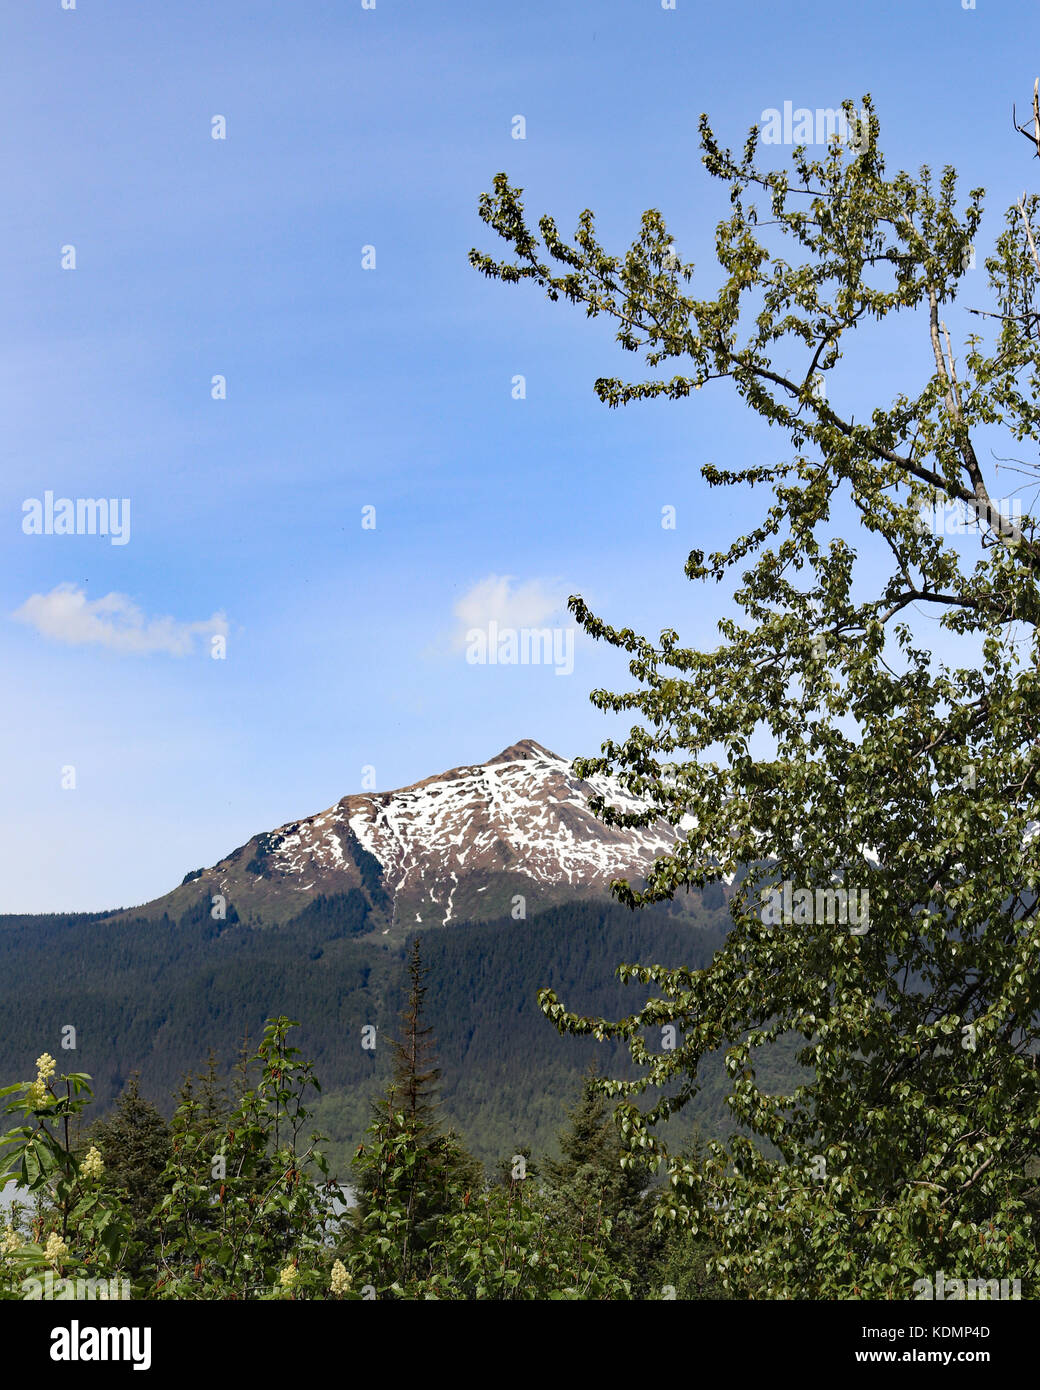 Pine trees and mountains surrounding the Mendenhall Glacier Recreational Area in Juneau, Alaska - Stock Image